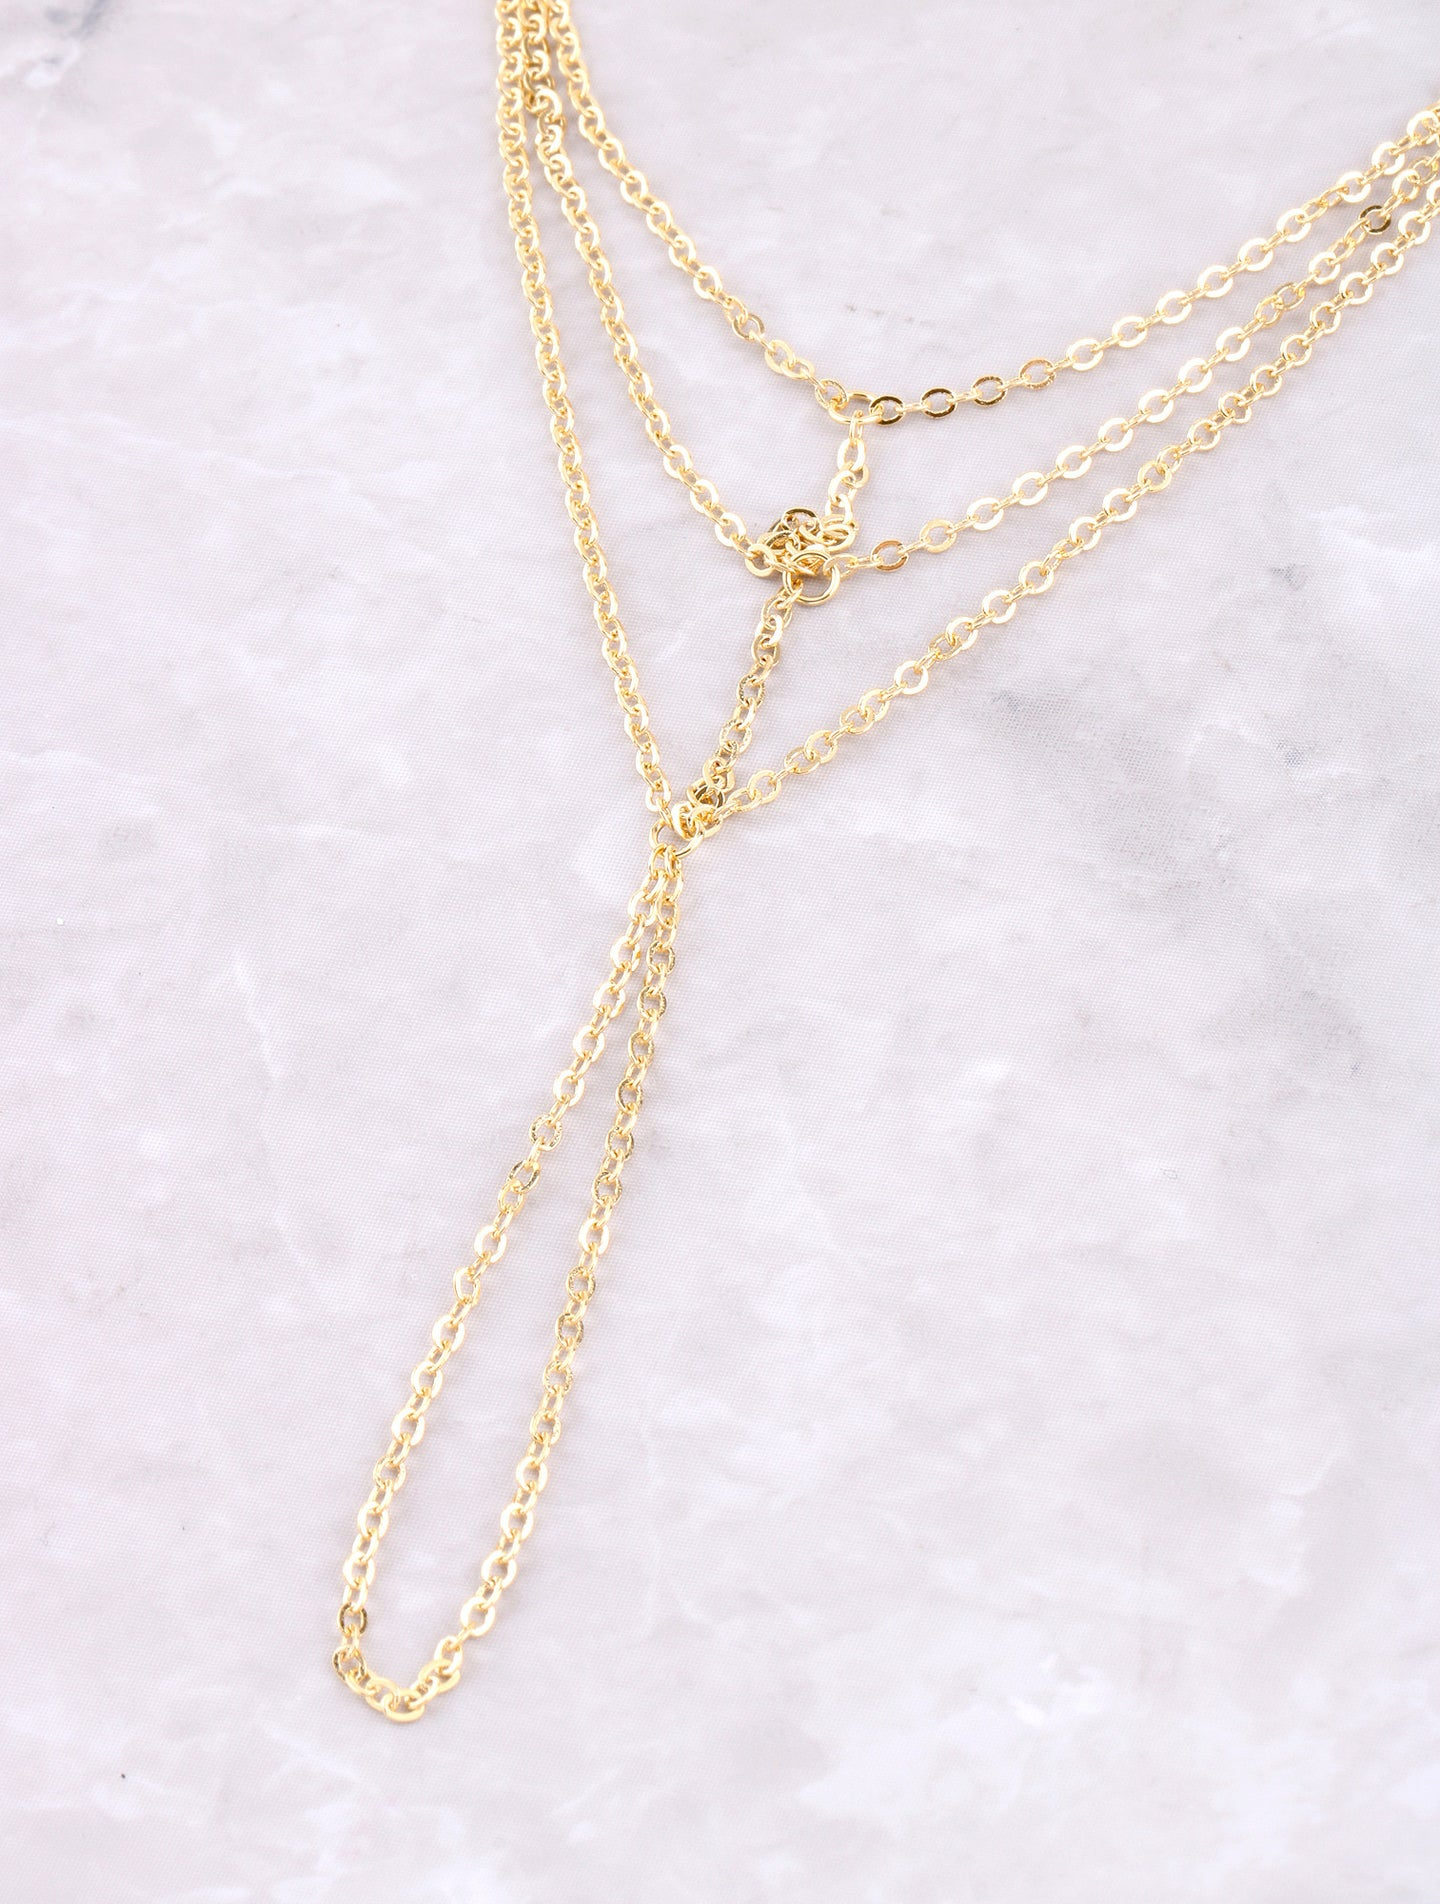 Hanging Web Hand Chain Anarchy Street Gold